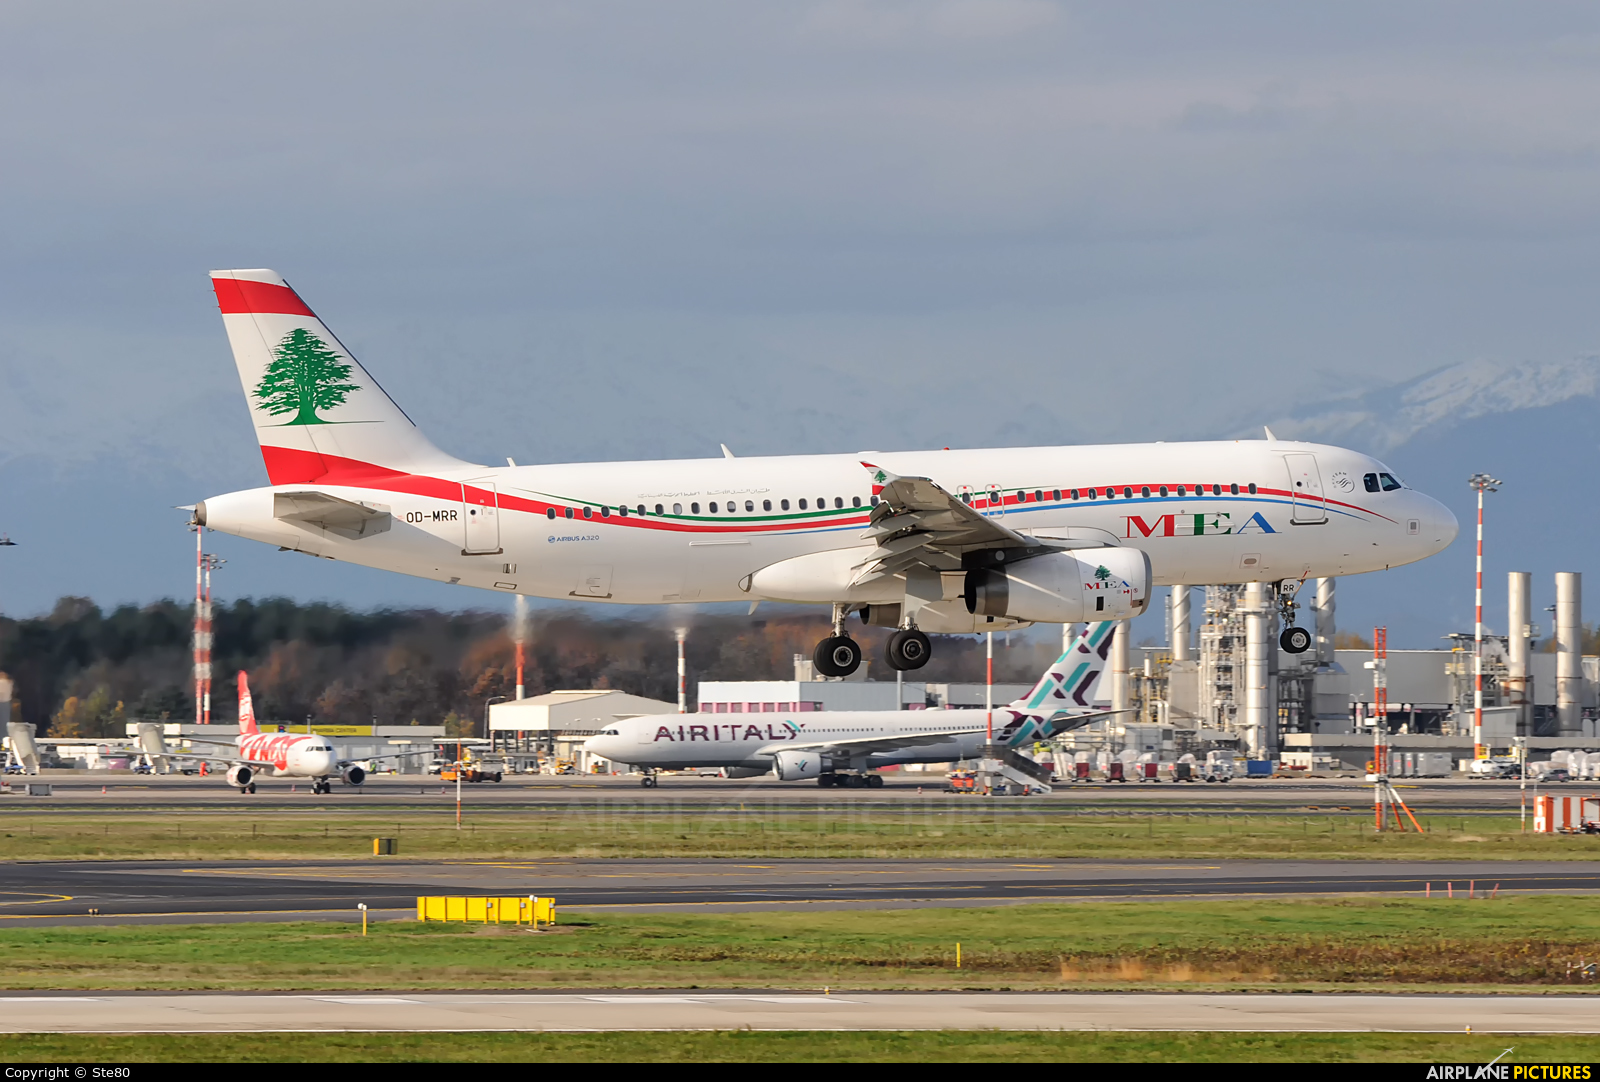 MEA - Middle East Airlines OD-MRR aircraft at Milan - Malpensa